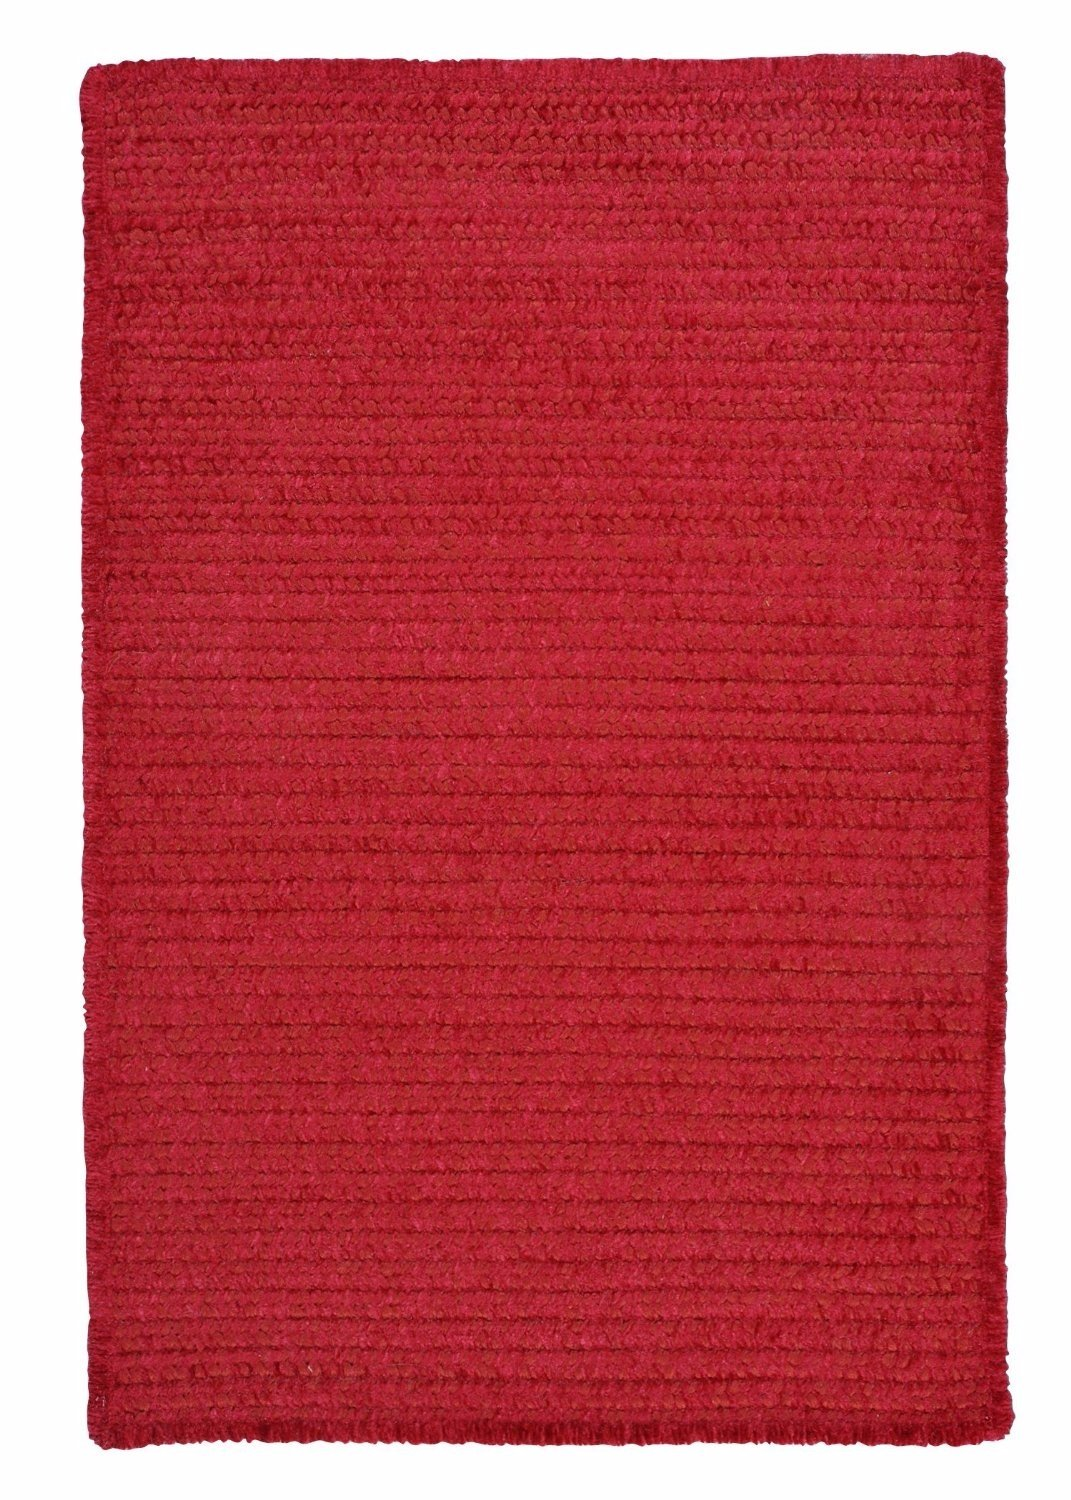 Ambiant Sangria Chair Pad M703 Kids / Teen Red 15''X15'' (SET 4) - Area Rug